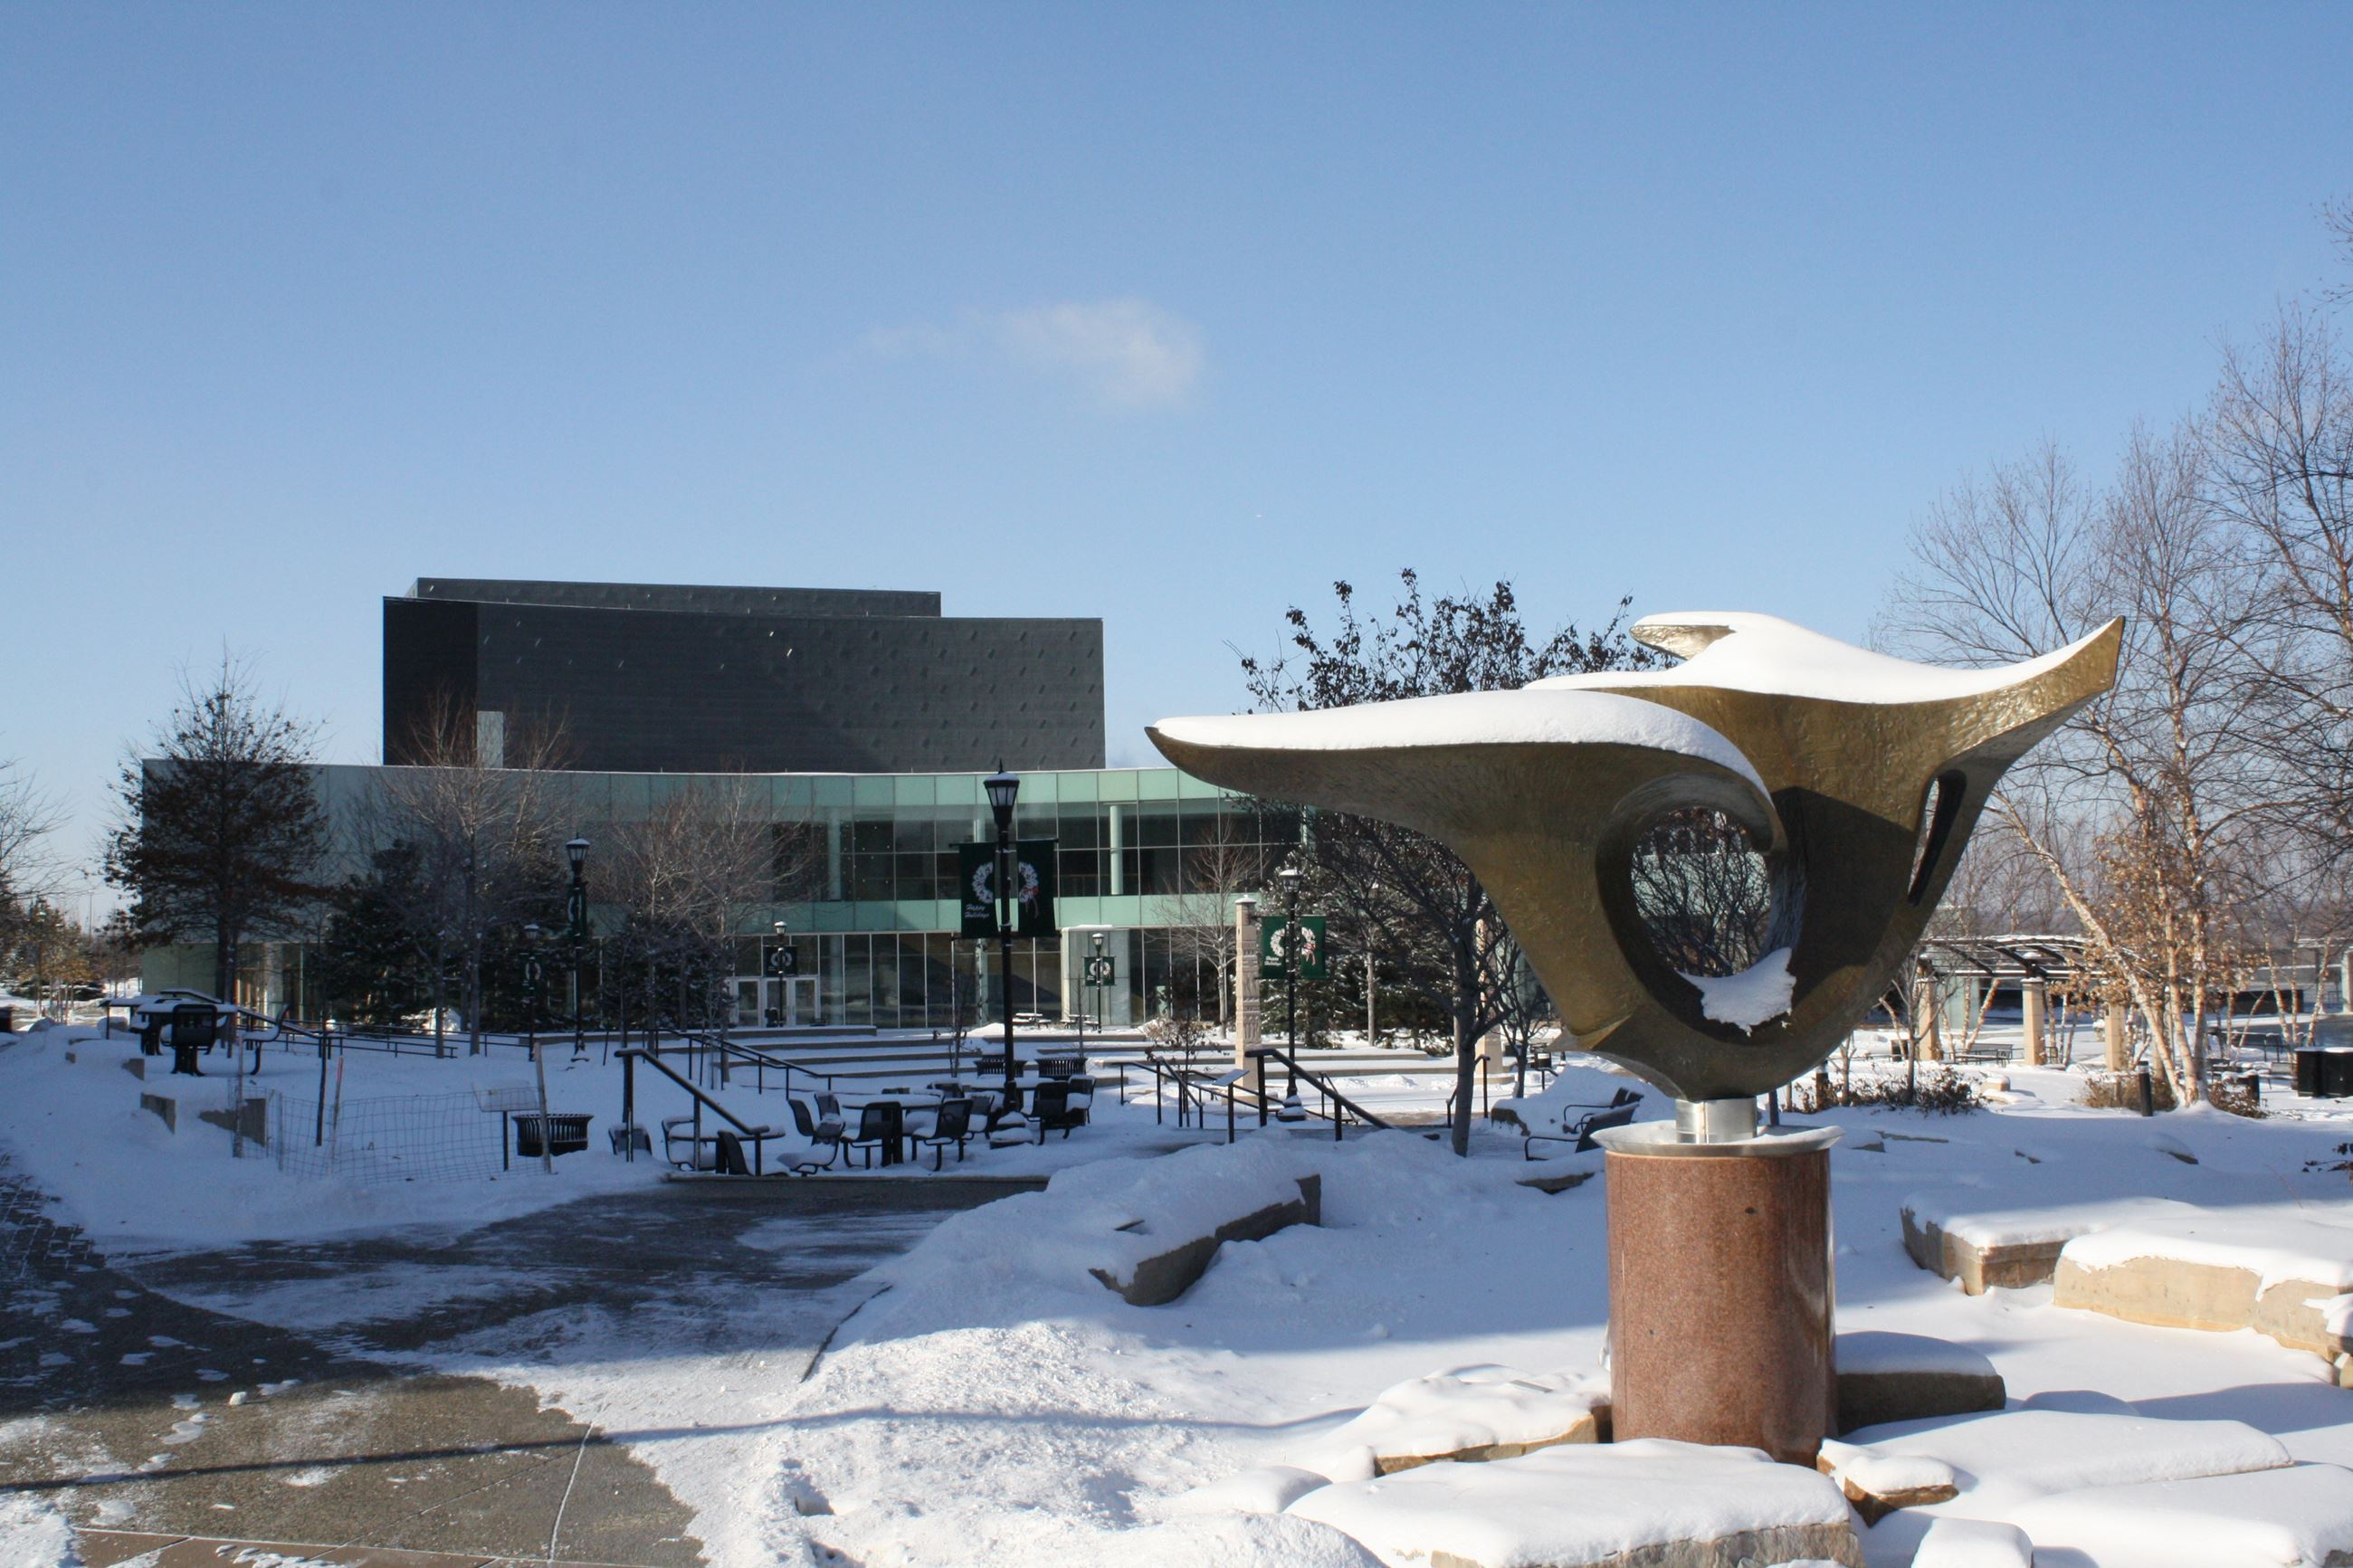 Centrifuge sculpture covered in snow. The Ames Center can be seen in the background